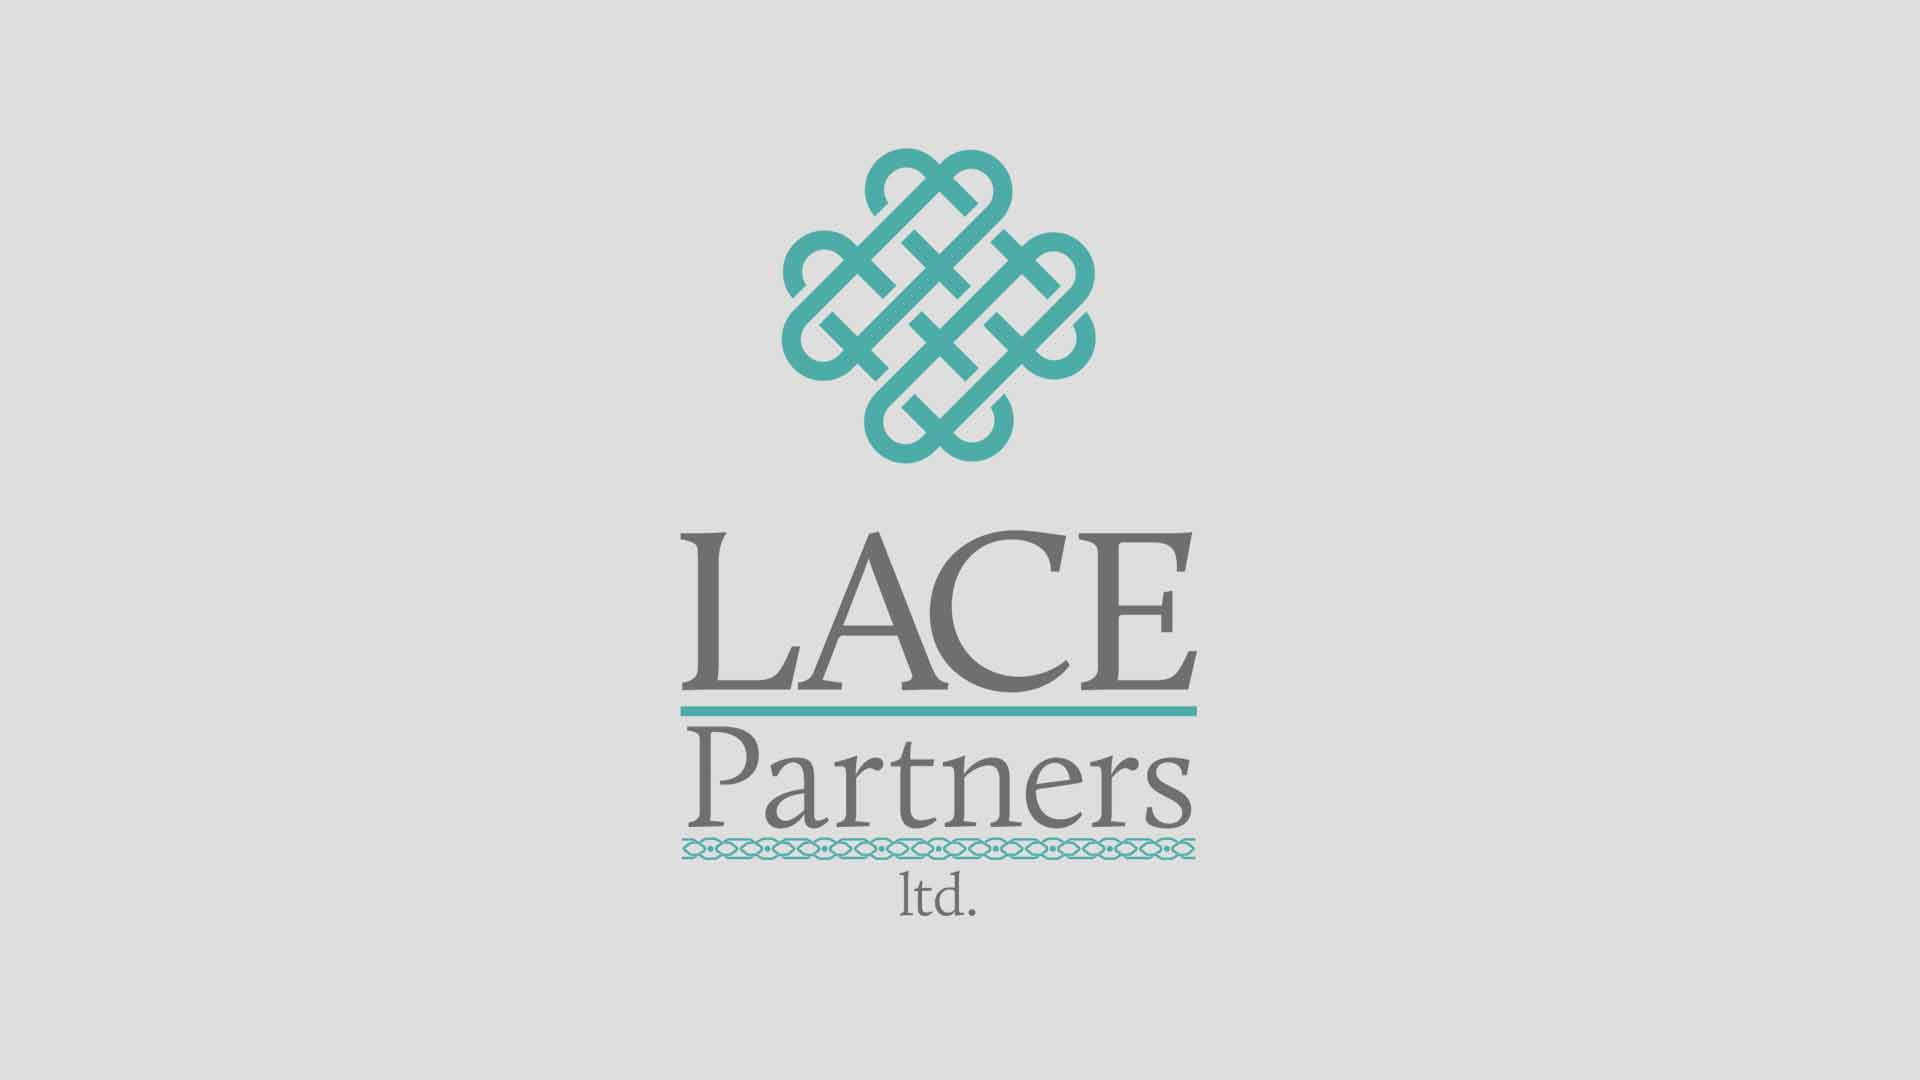 Introducing LACE Partners, gold sponsor of the National Happiness Awards